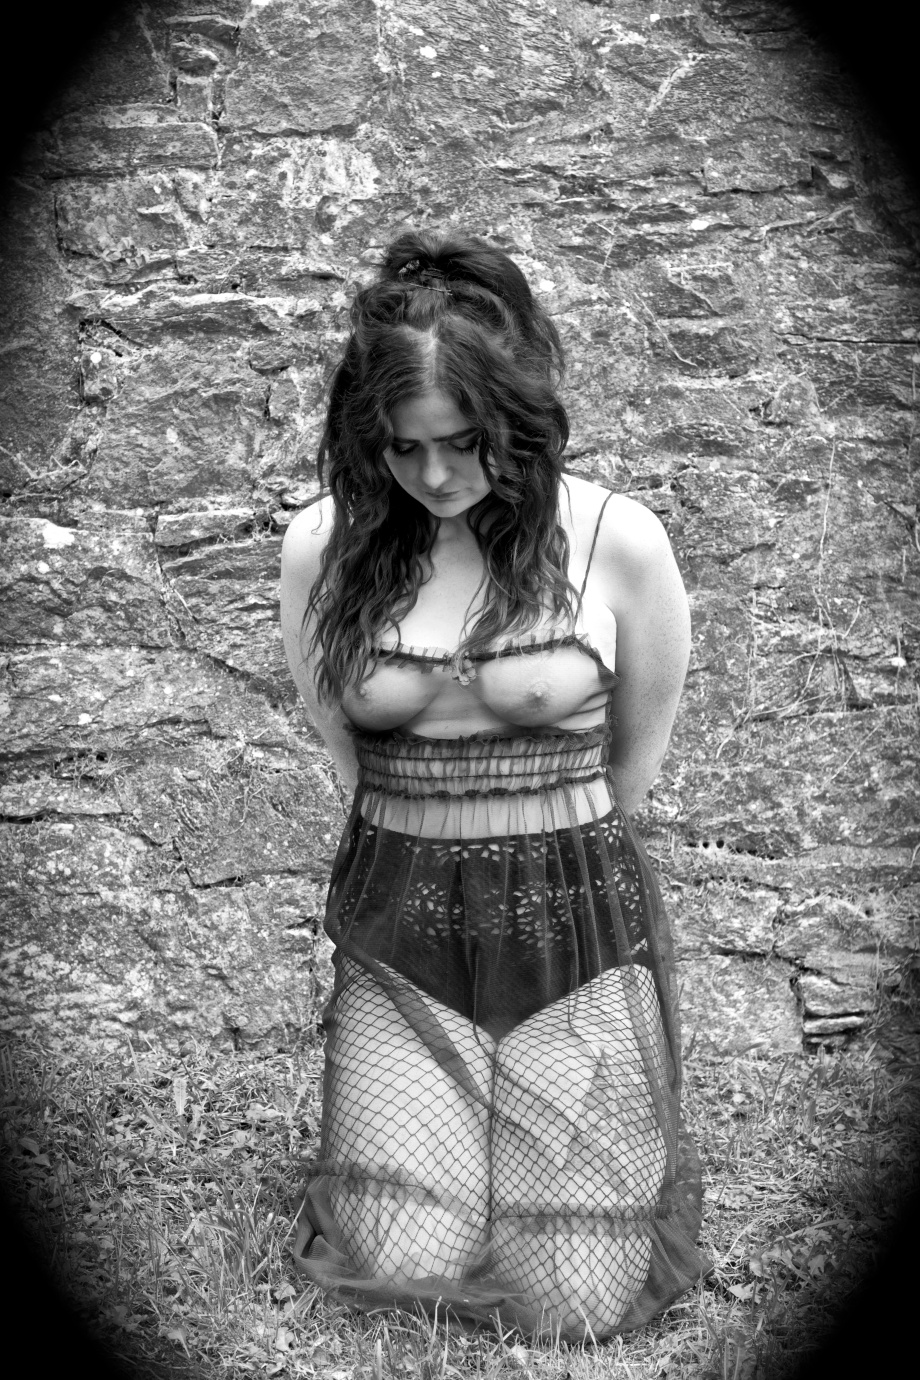 alternative, glamour, cork, kilcrea, abbey, black and white, gothic, eyes, samhain, silent movie, topless, implied